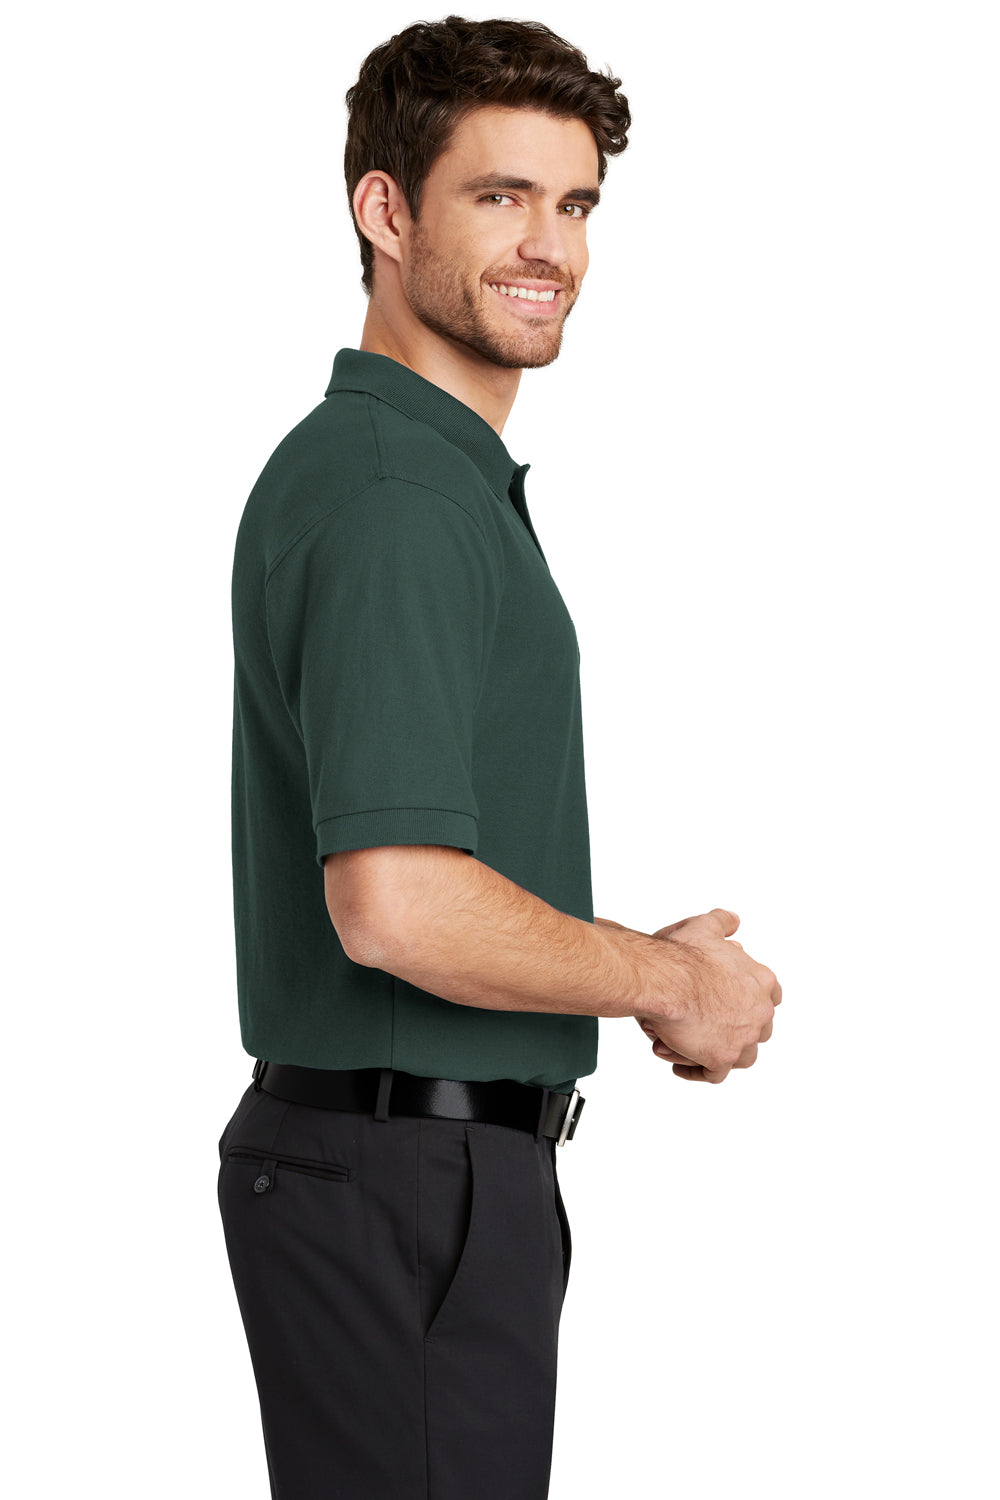 Port Authority K500 Mens Silk Touch Wrinkle Resistant Short Sleeve Polo Shirt Dark Green Side